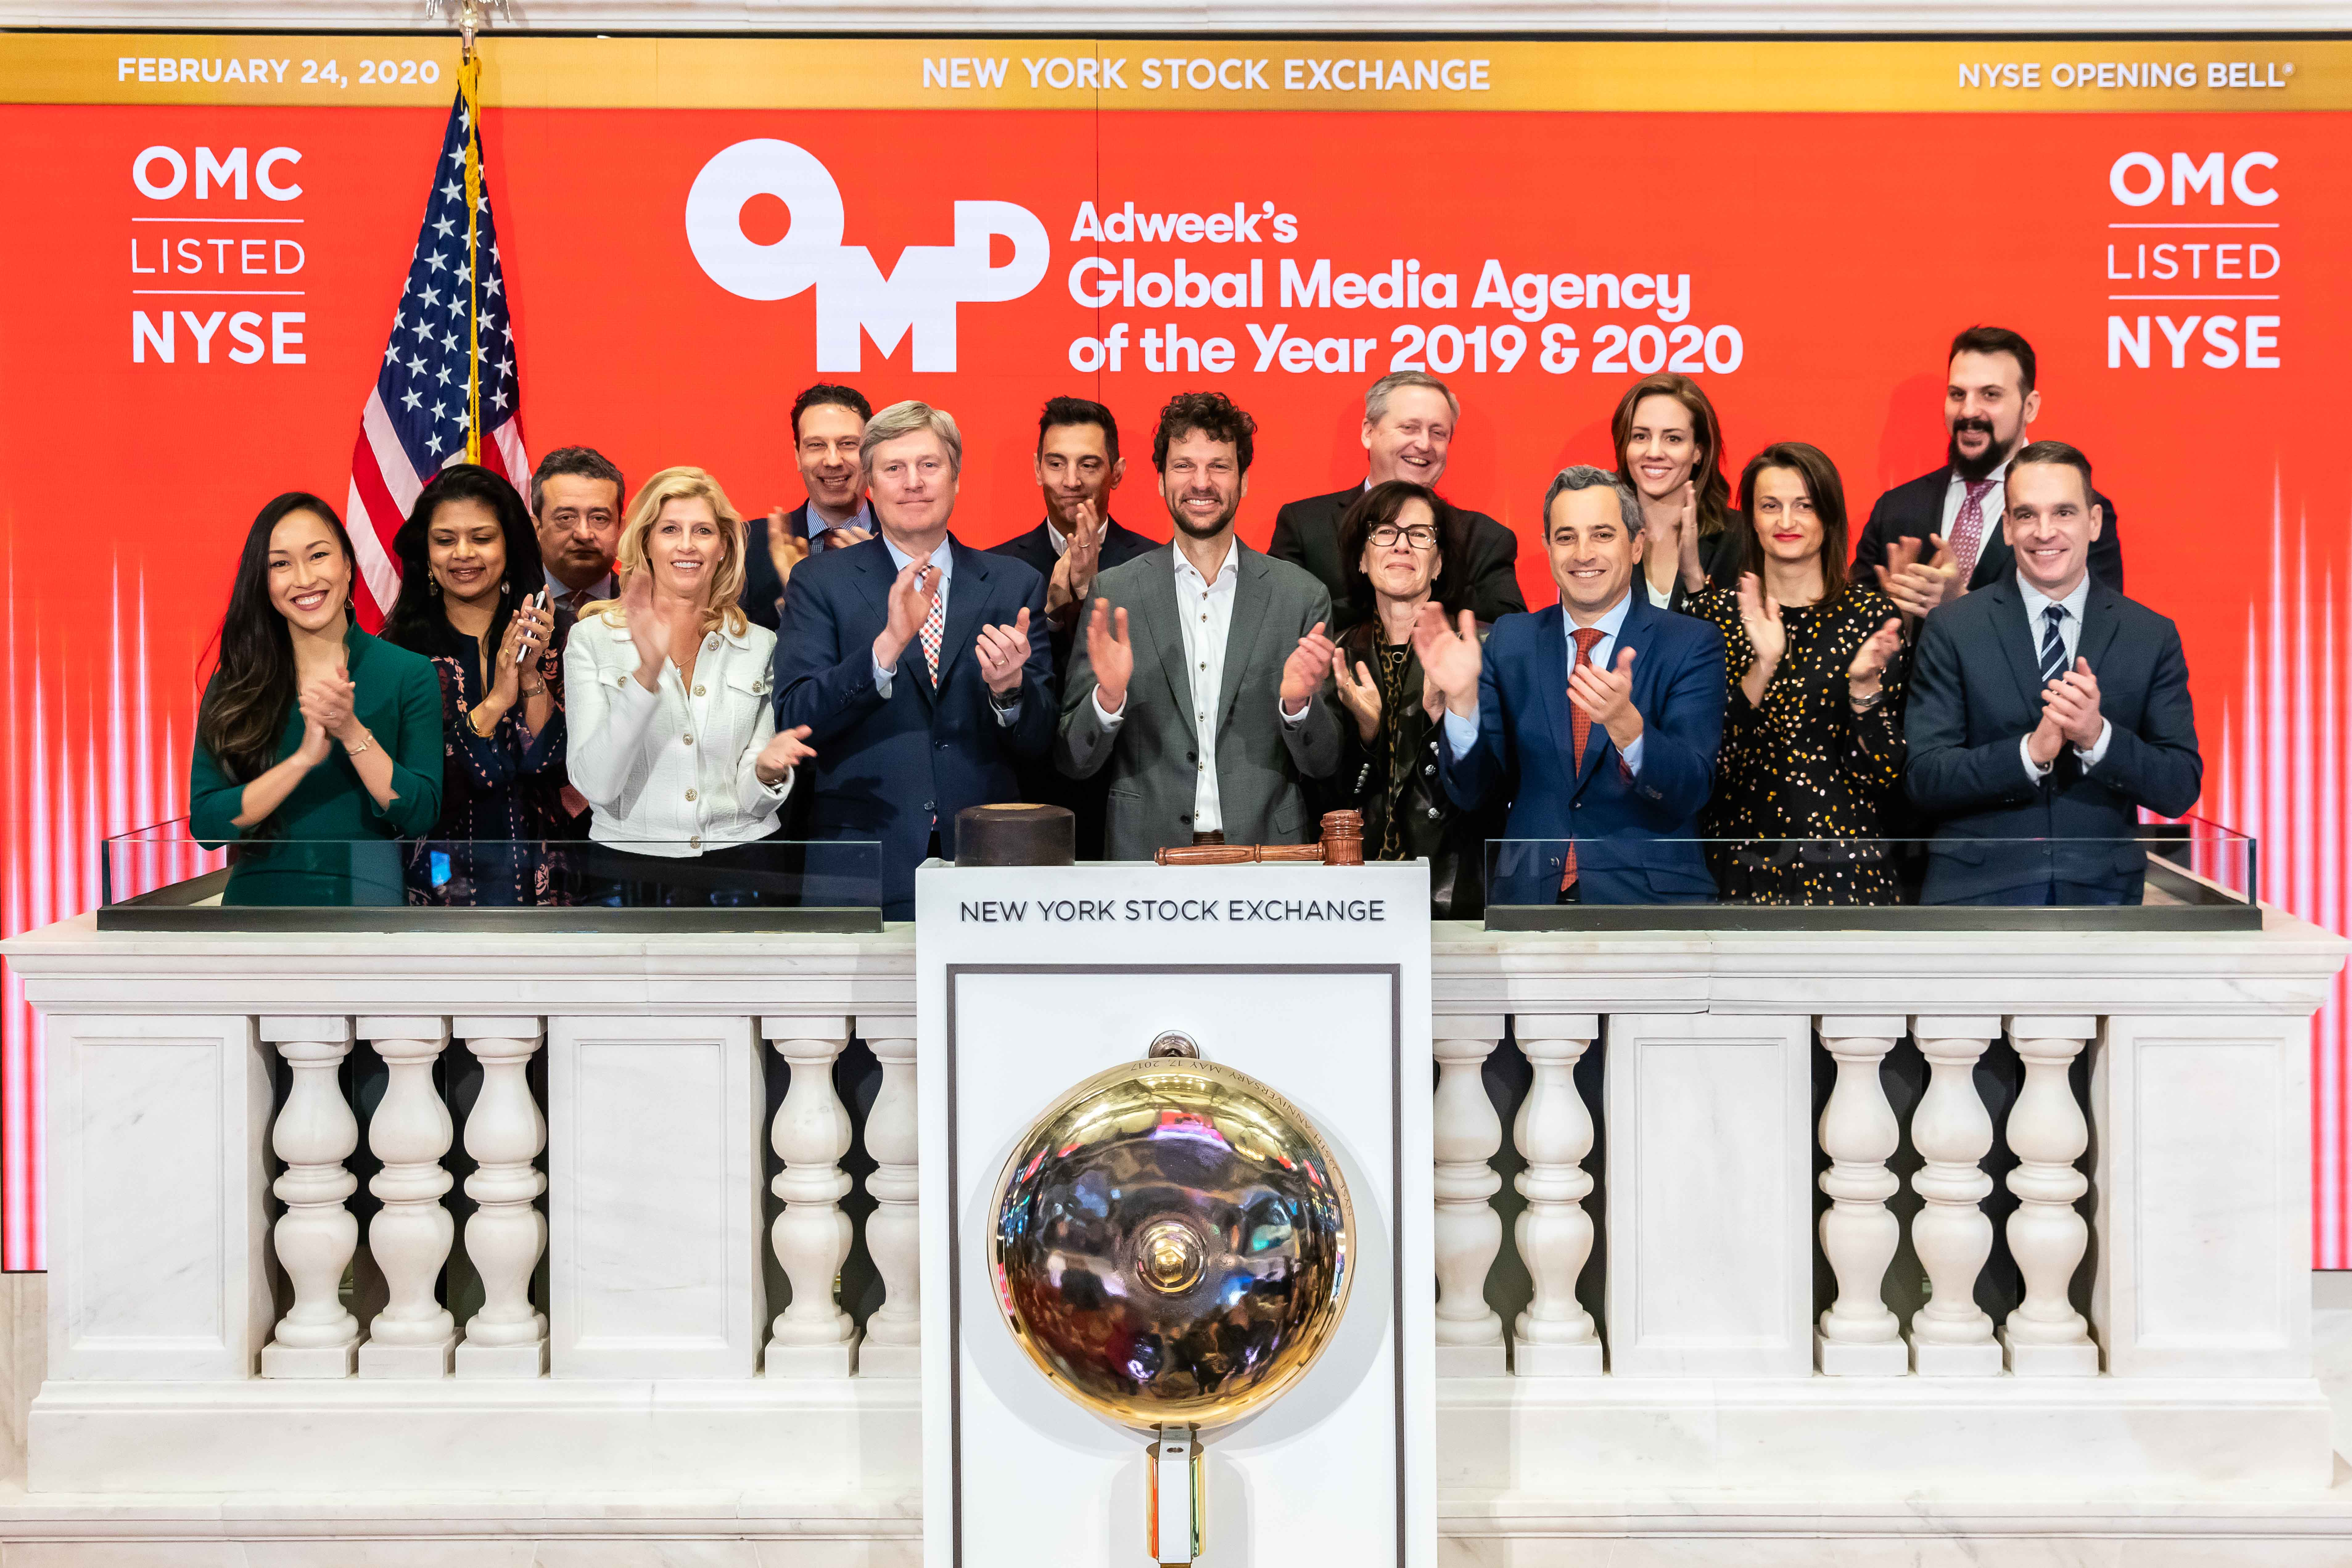 omd-named-global-media-agency-of-the-year